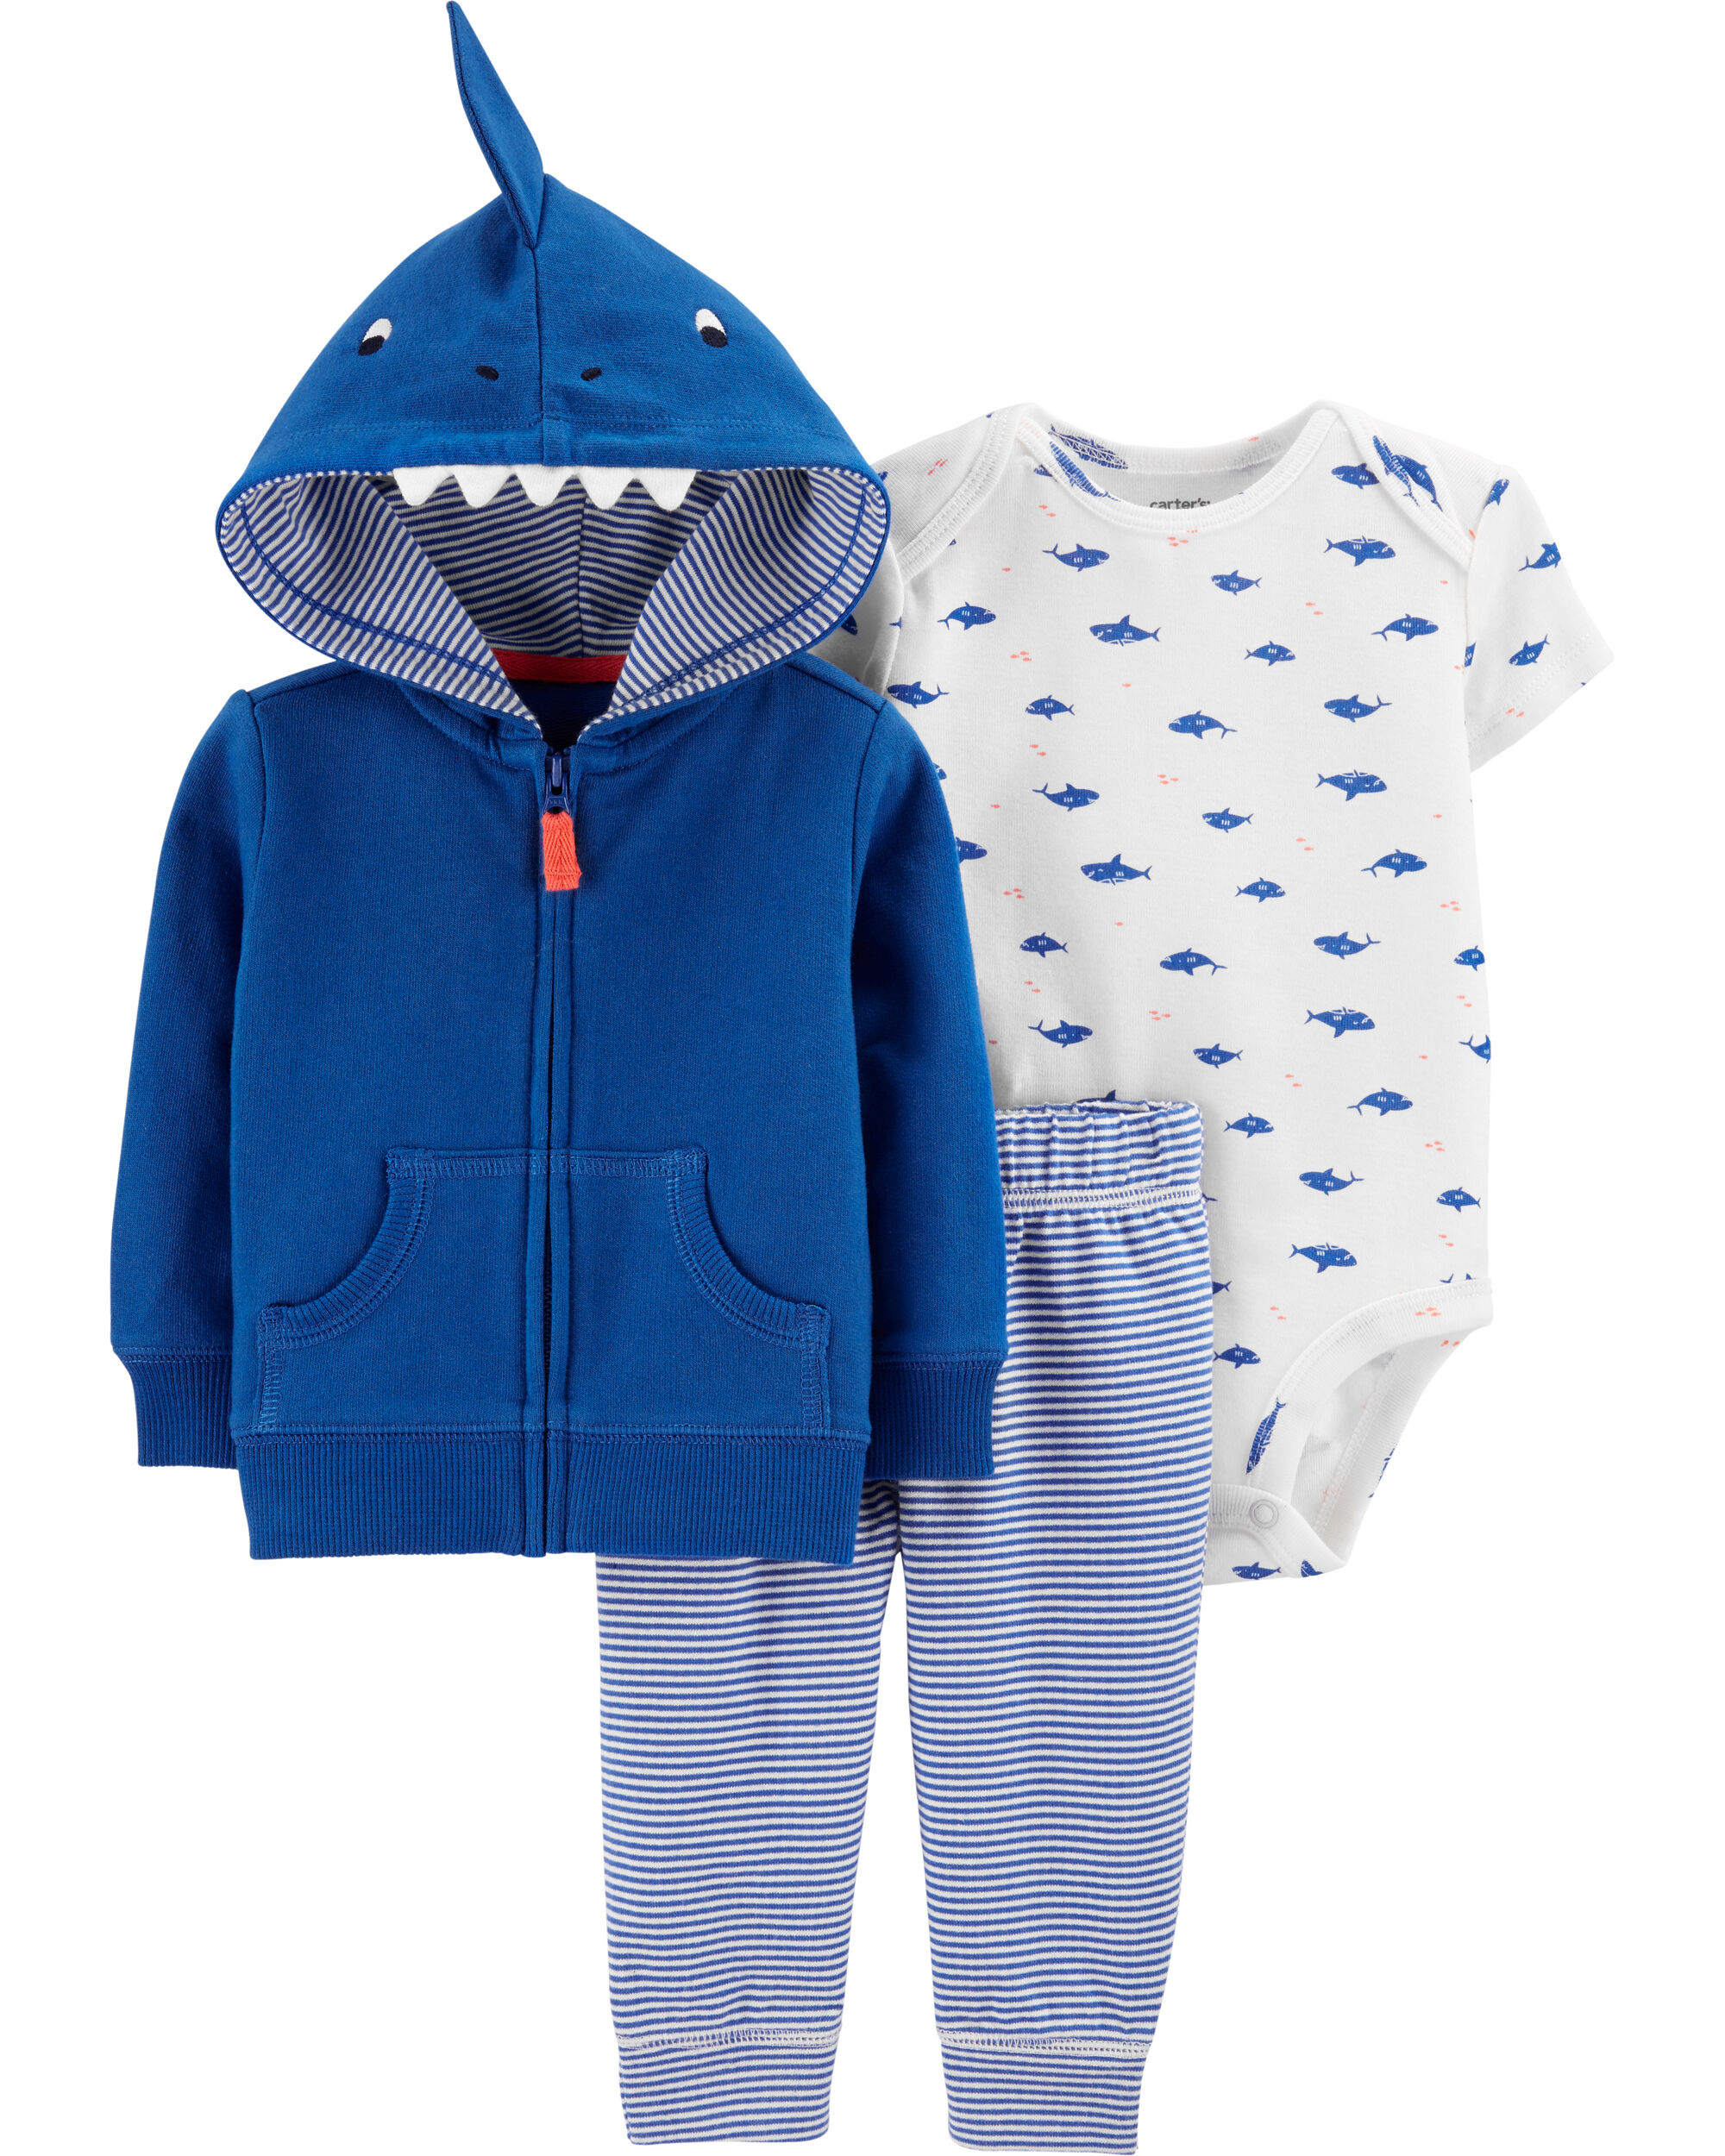 3 Piece Hoodie Set 6 Designs NEW Baby Cardigan Sets Carters 6-24 Mths